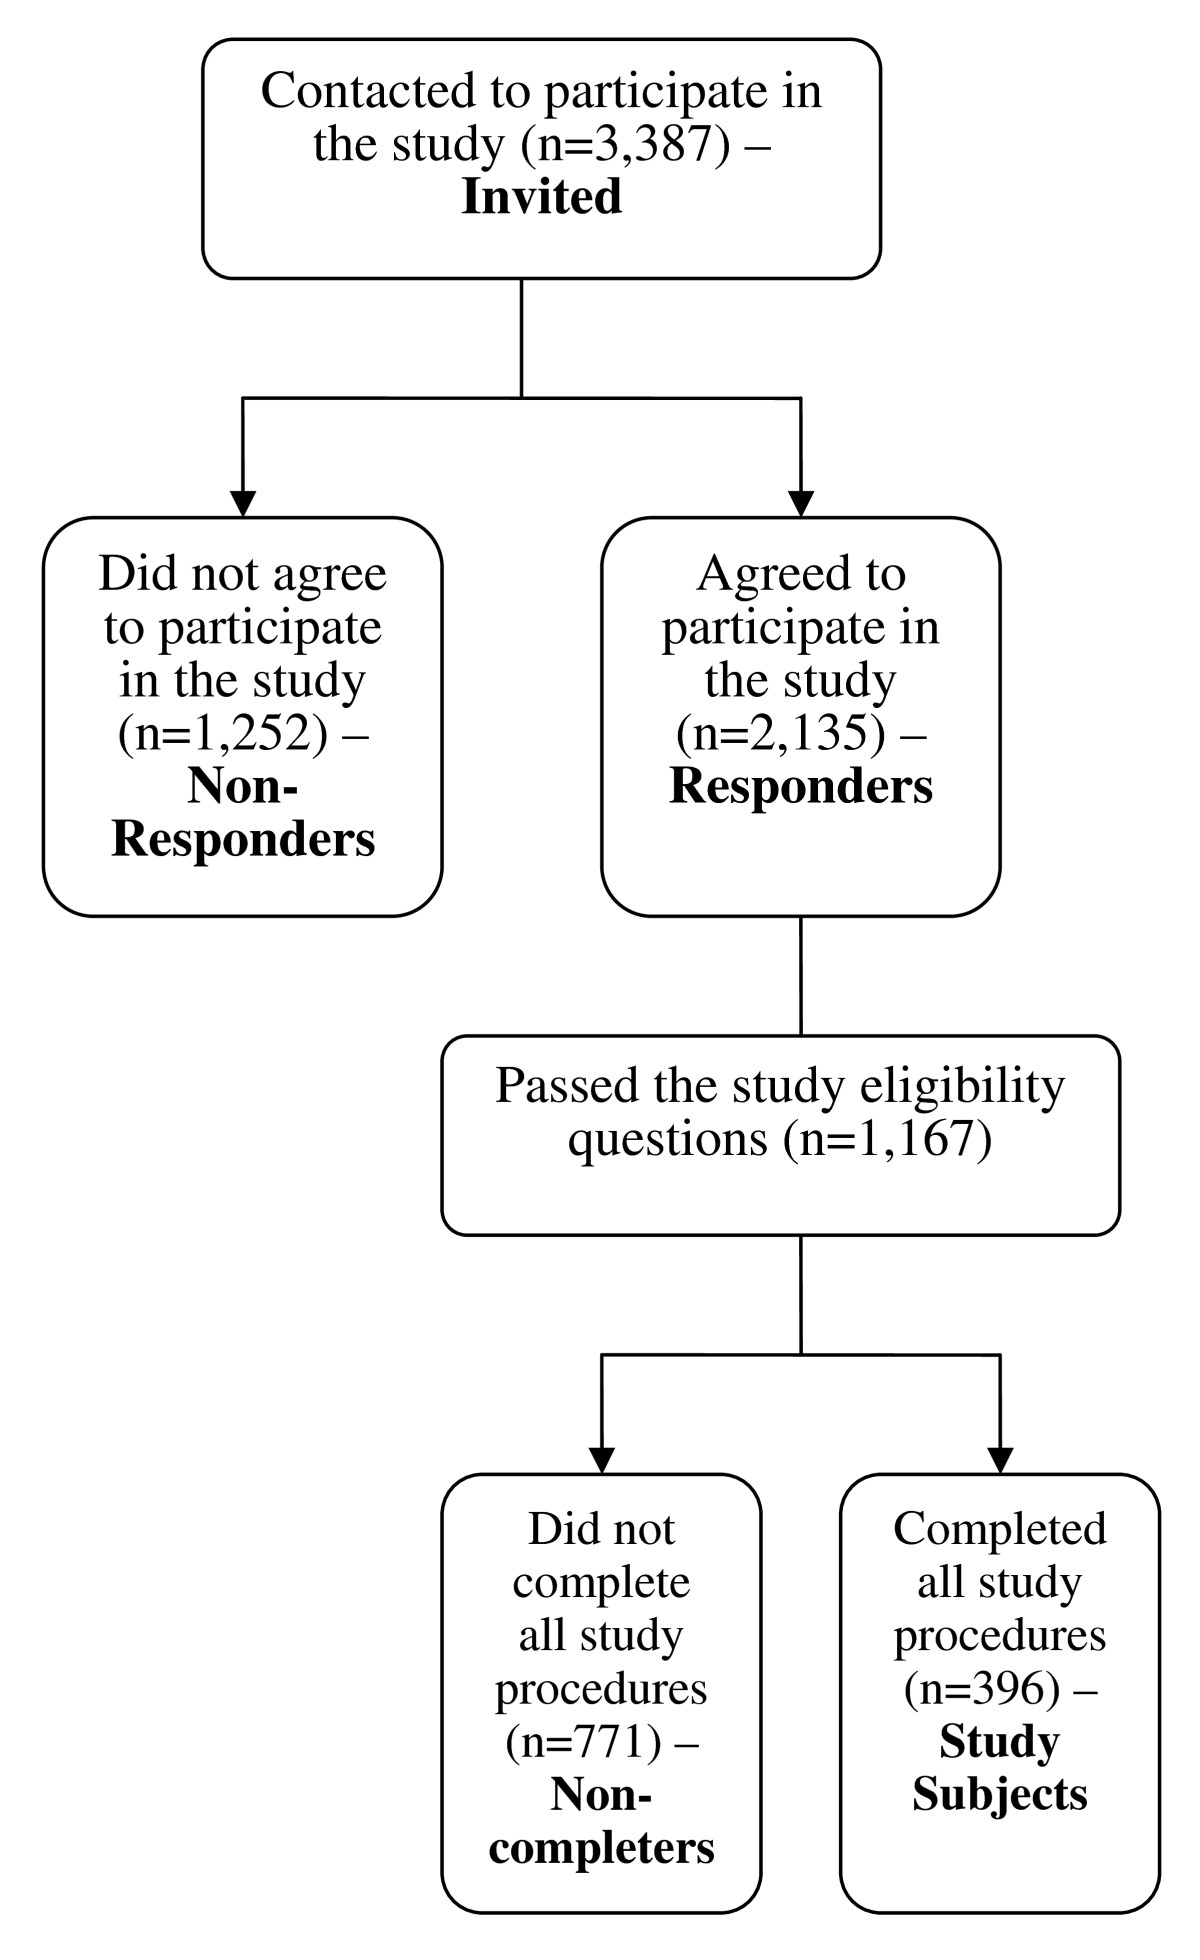 https://static-content.springer.com/image/art%3A10.1186%2F1477-7525-7-36/MediaObjects/12955_2008_Article_553_Fig1_HTML.jpg